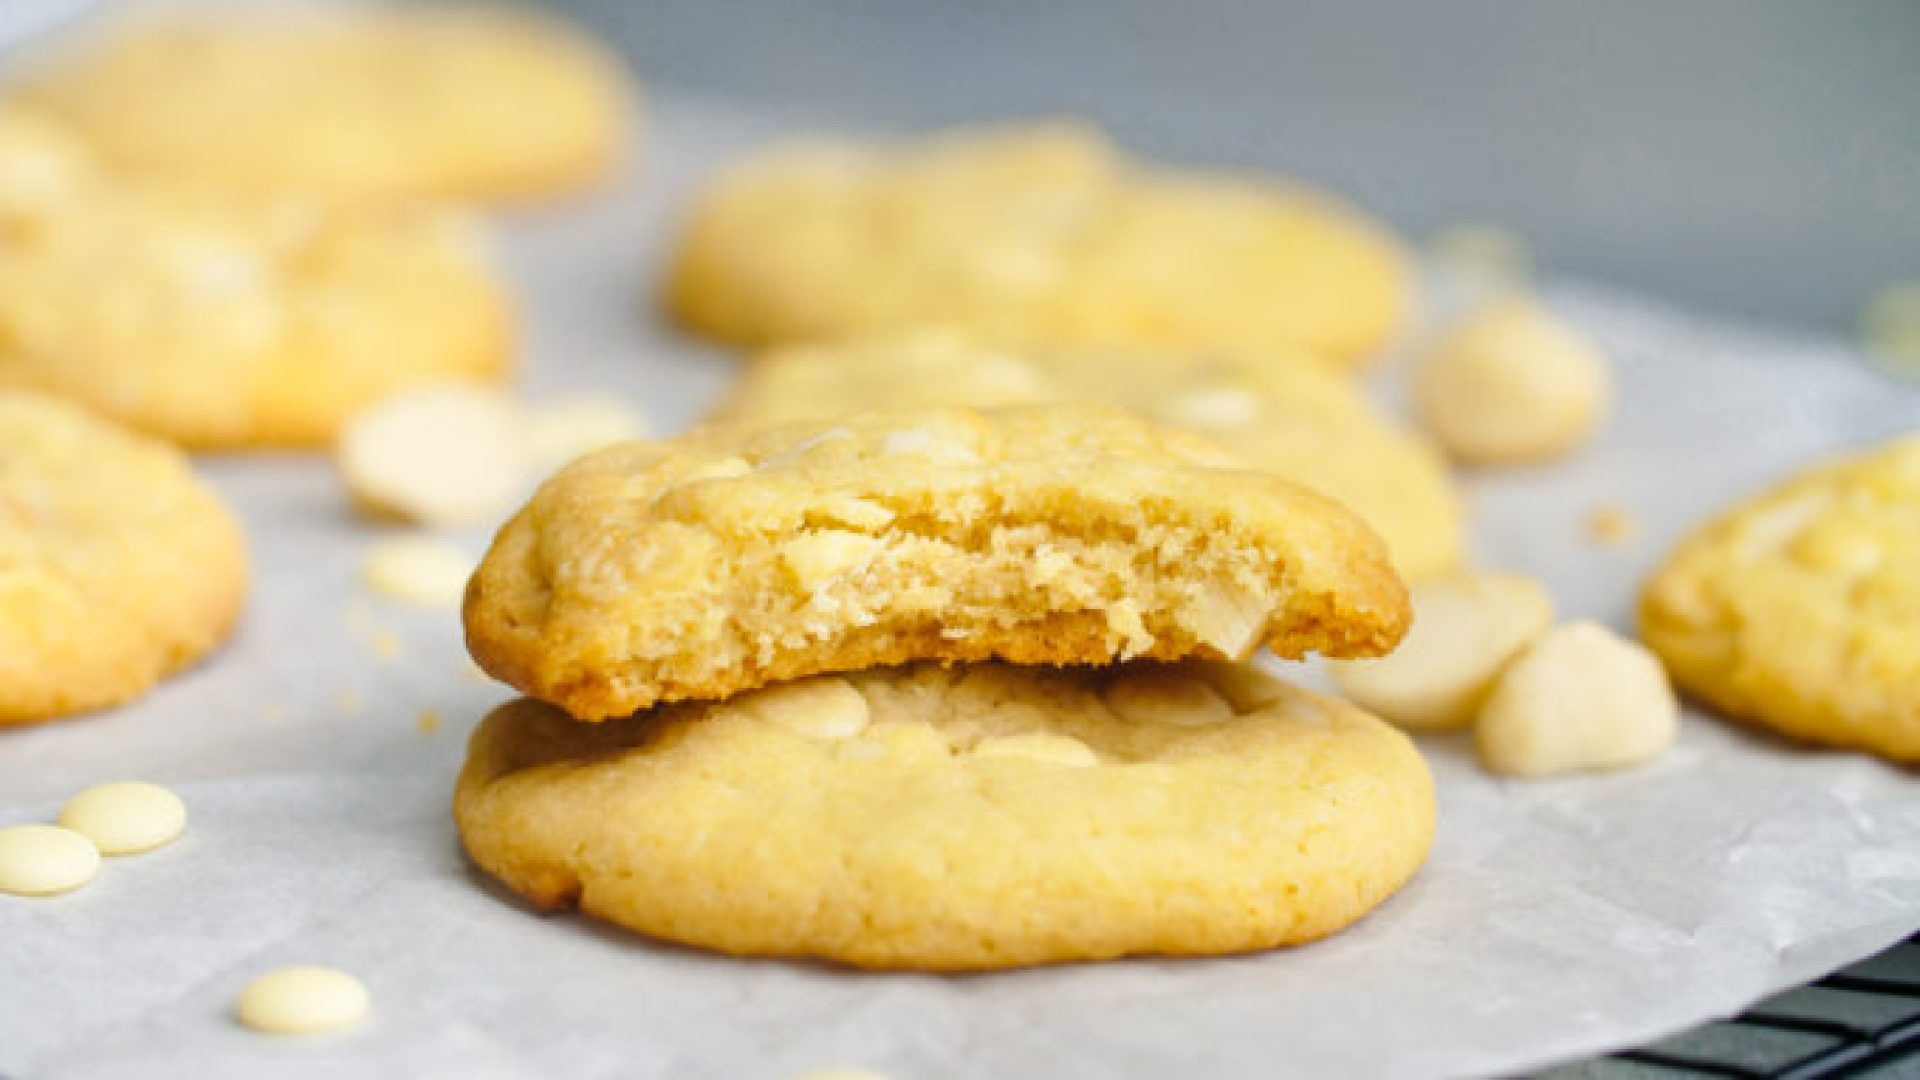 A delicious white chocolate macadamia nut cookie with a bite out, sitting a top another white chocolate chip macadamia nut cookie with a few cookies in the background